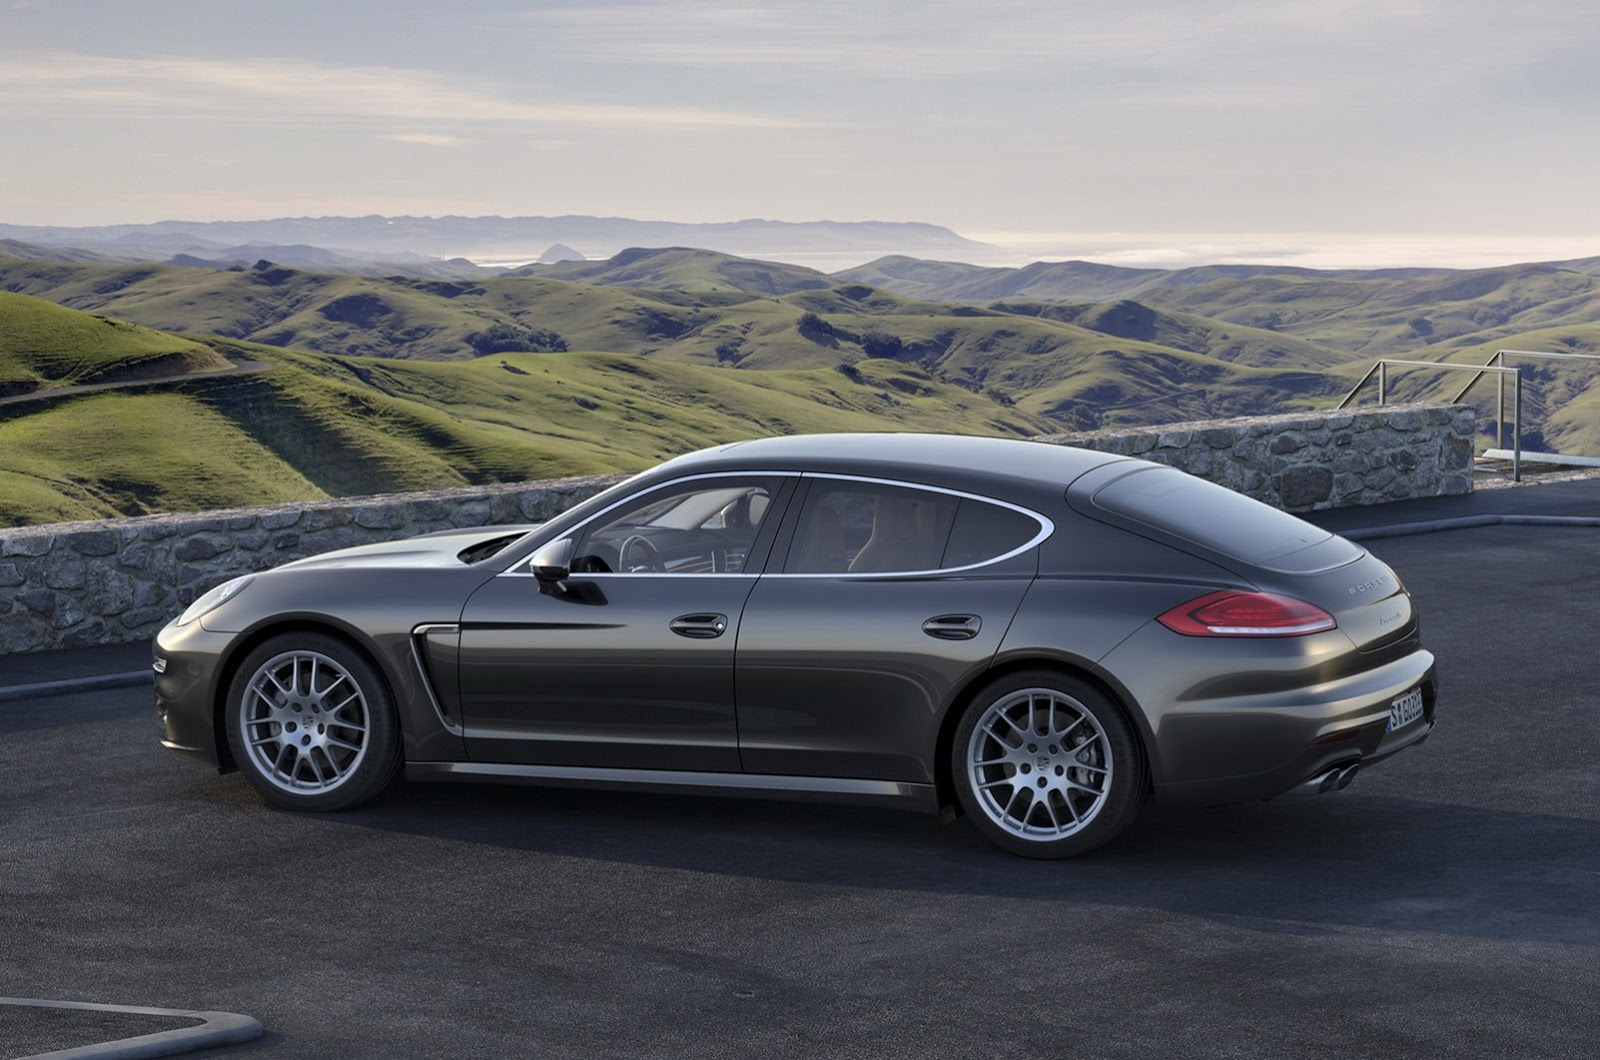 2014 Porsche Panamera Facelift First Photos Leaked HD Style Wallpapers Download free beautiful images and photos HD [prarshipsa.tk]